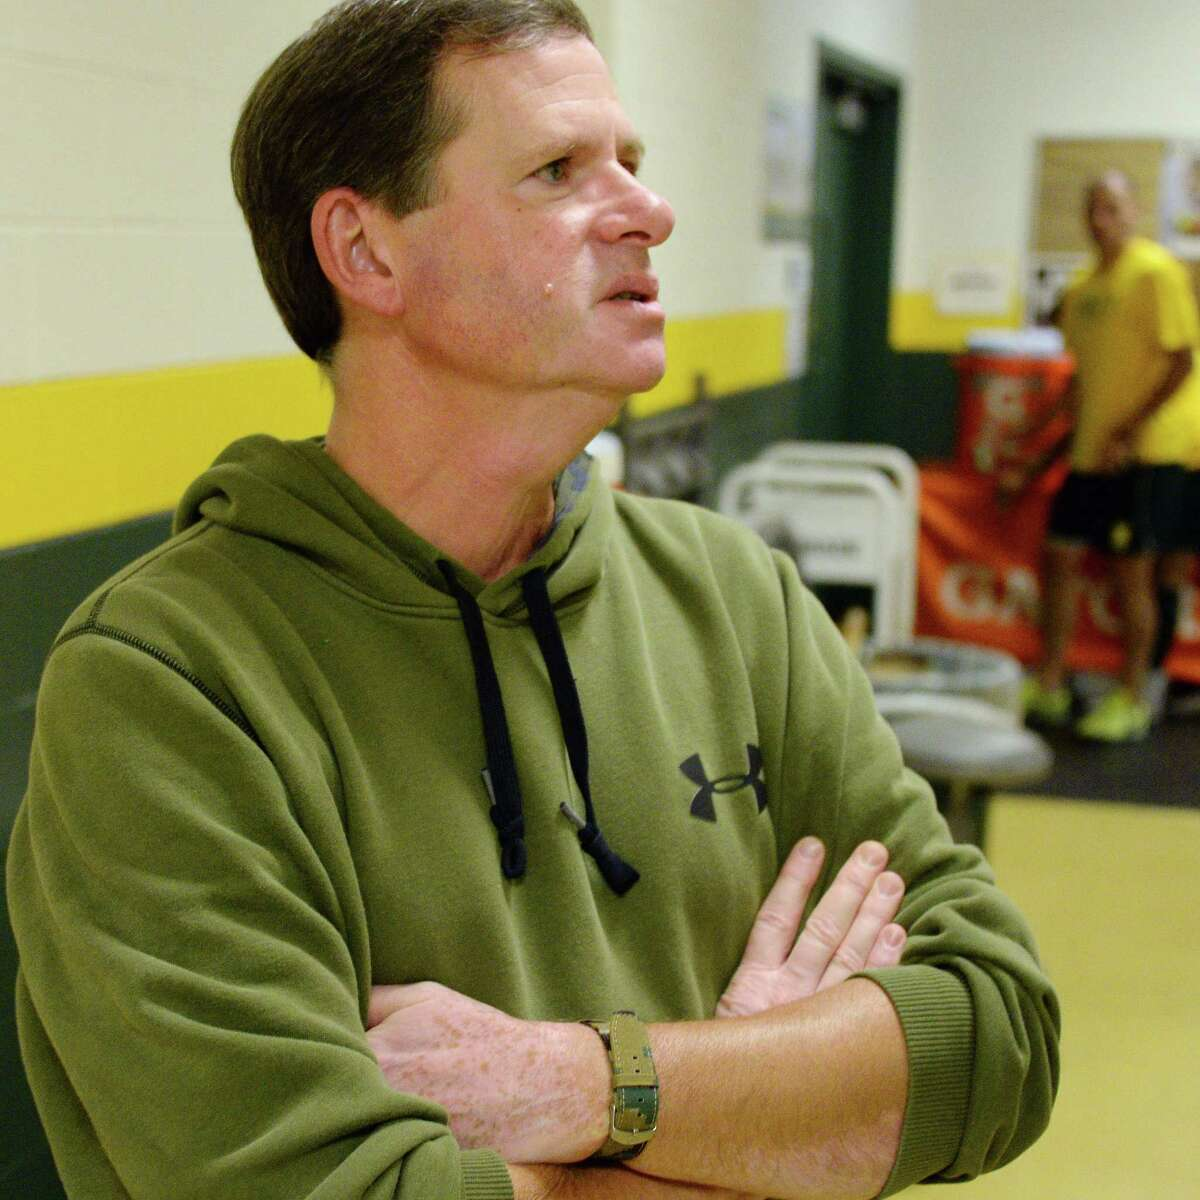 Siena's athletic trainer Greg Dashnaw discusses plans for their new sports medicine suite under construction as part of Siena's $13.5 million in athletic department renovations Friday Sept. 29, 2017 in Colonie, NY. (John Carl D'Annibale / Times Union)